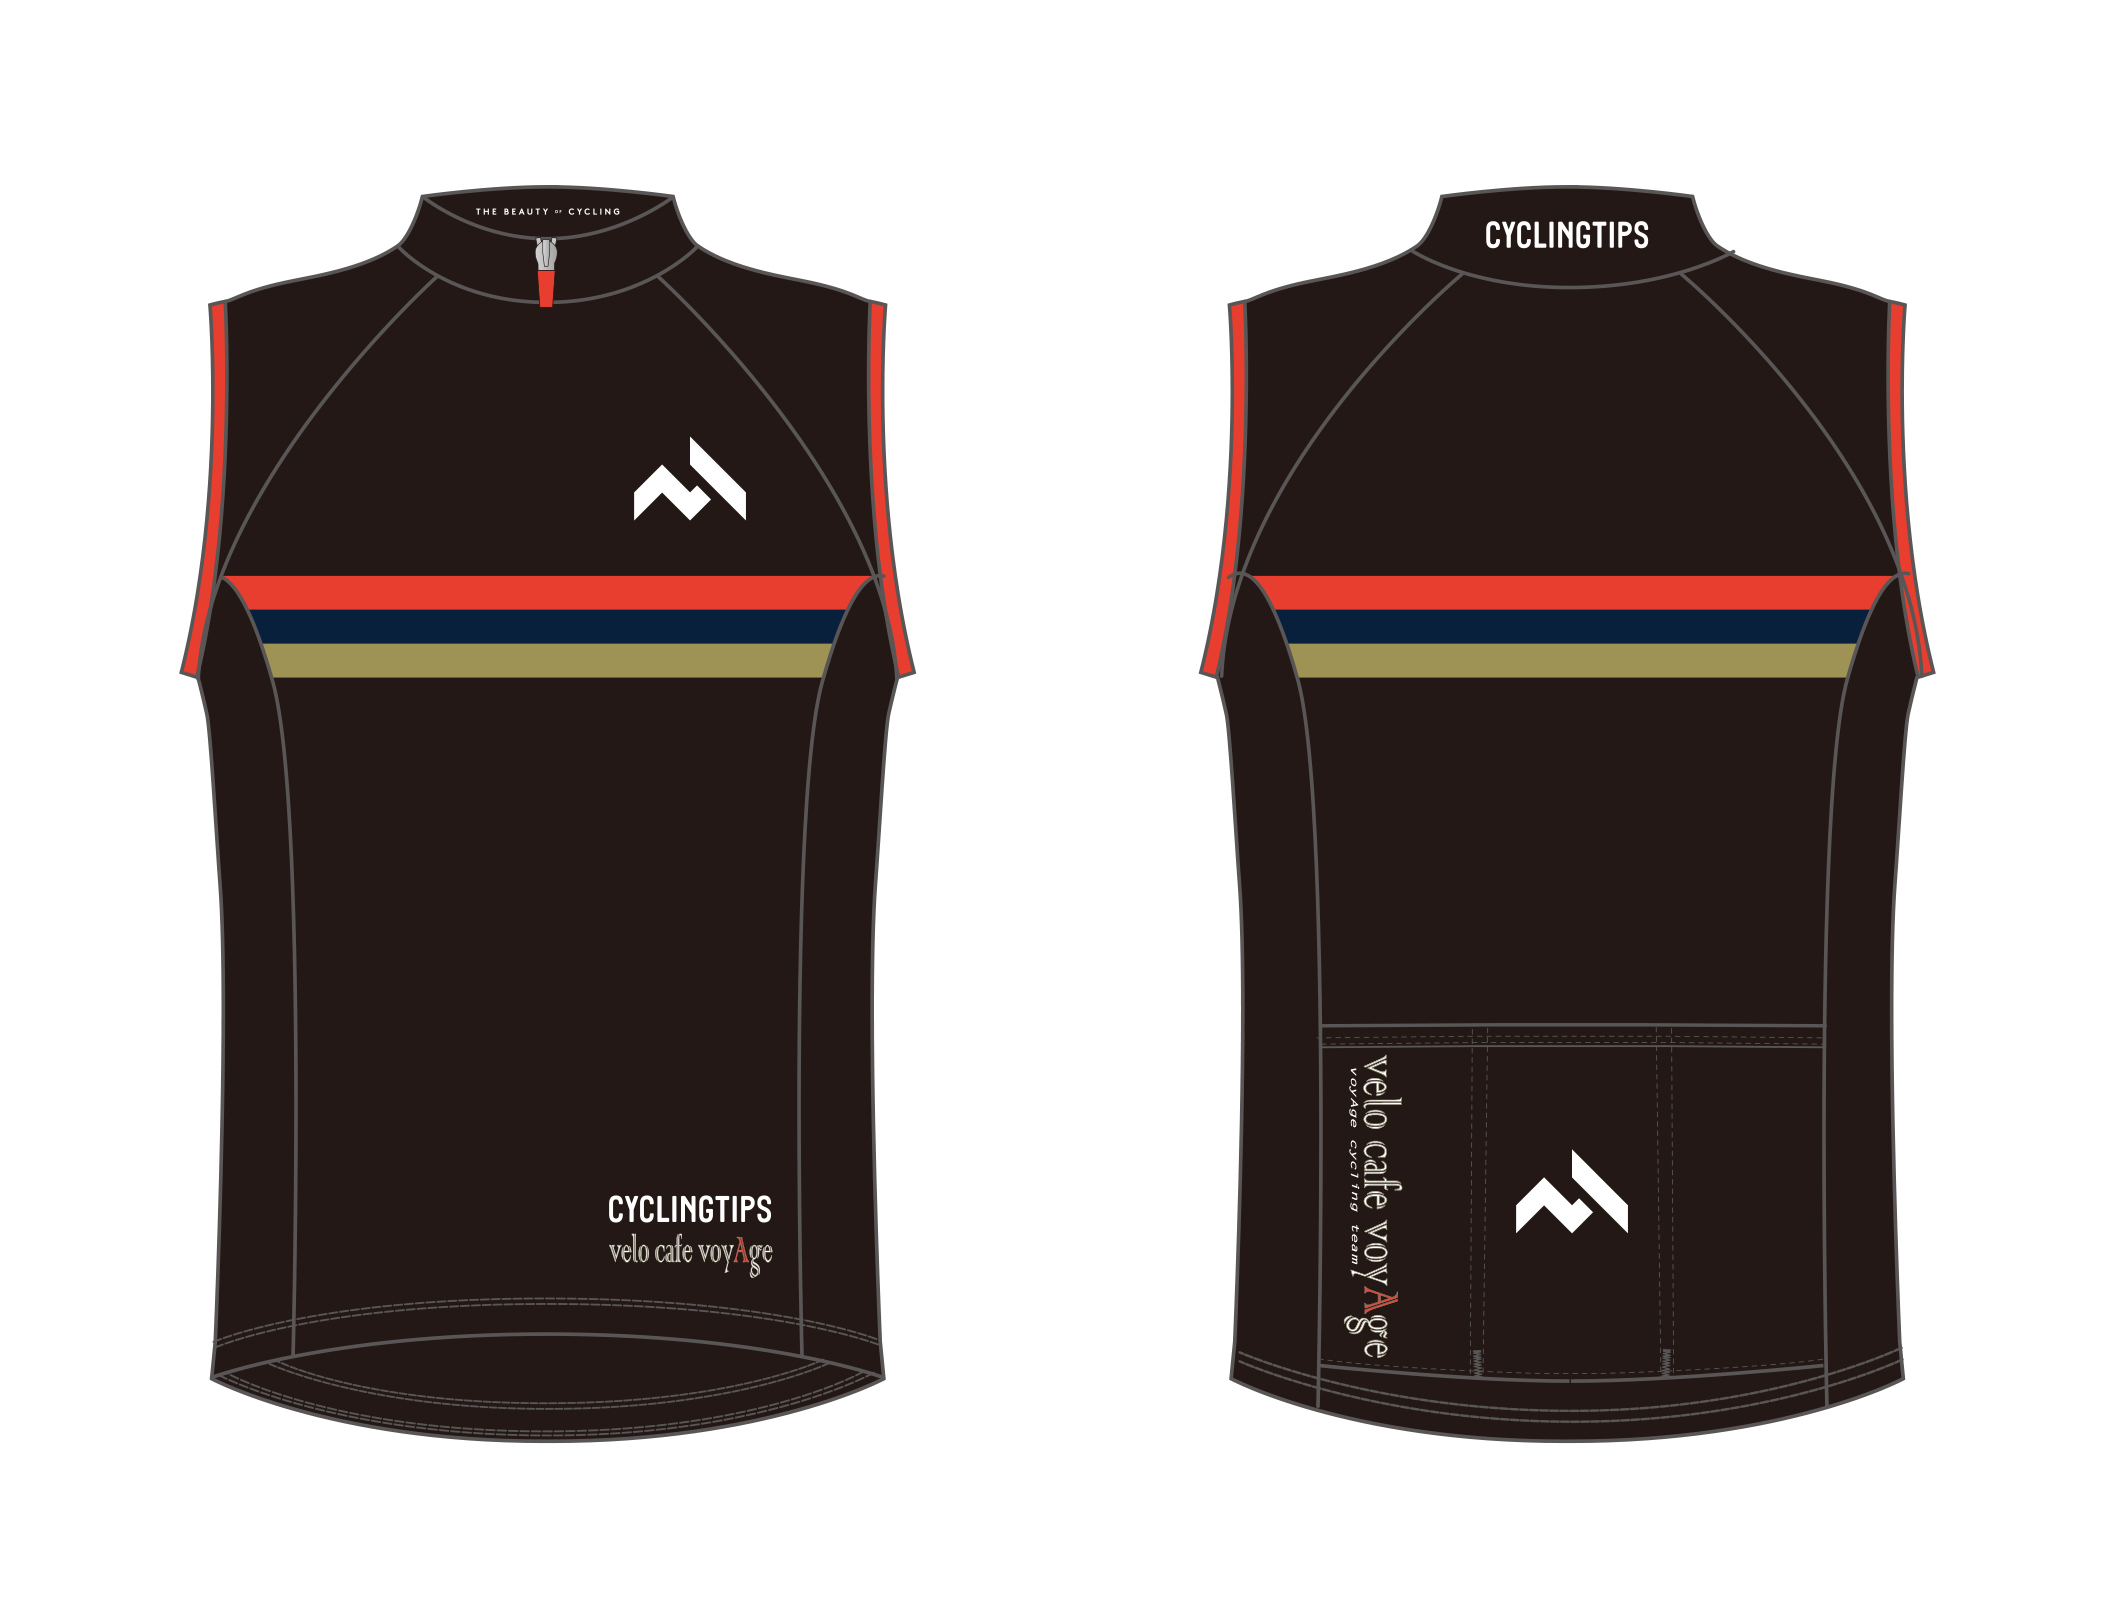 【voyAge cycling team WINTER collection 2017-2018】_c0351373_10462736.jpg